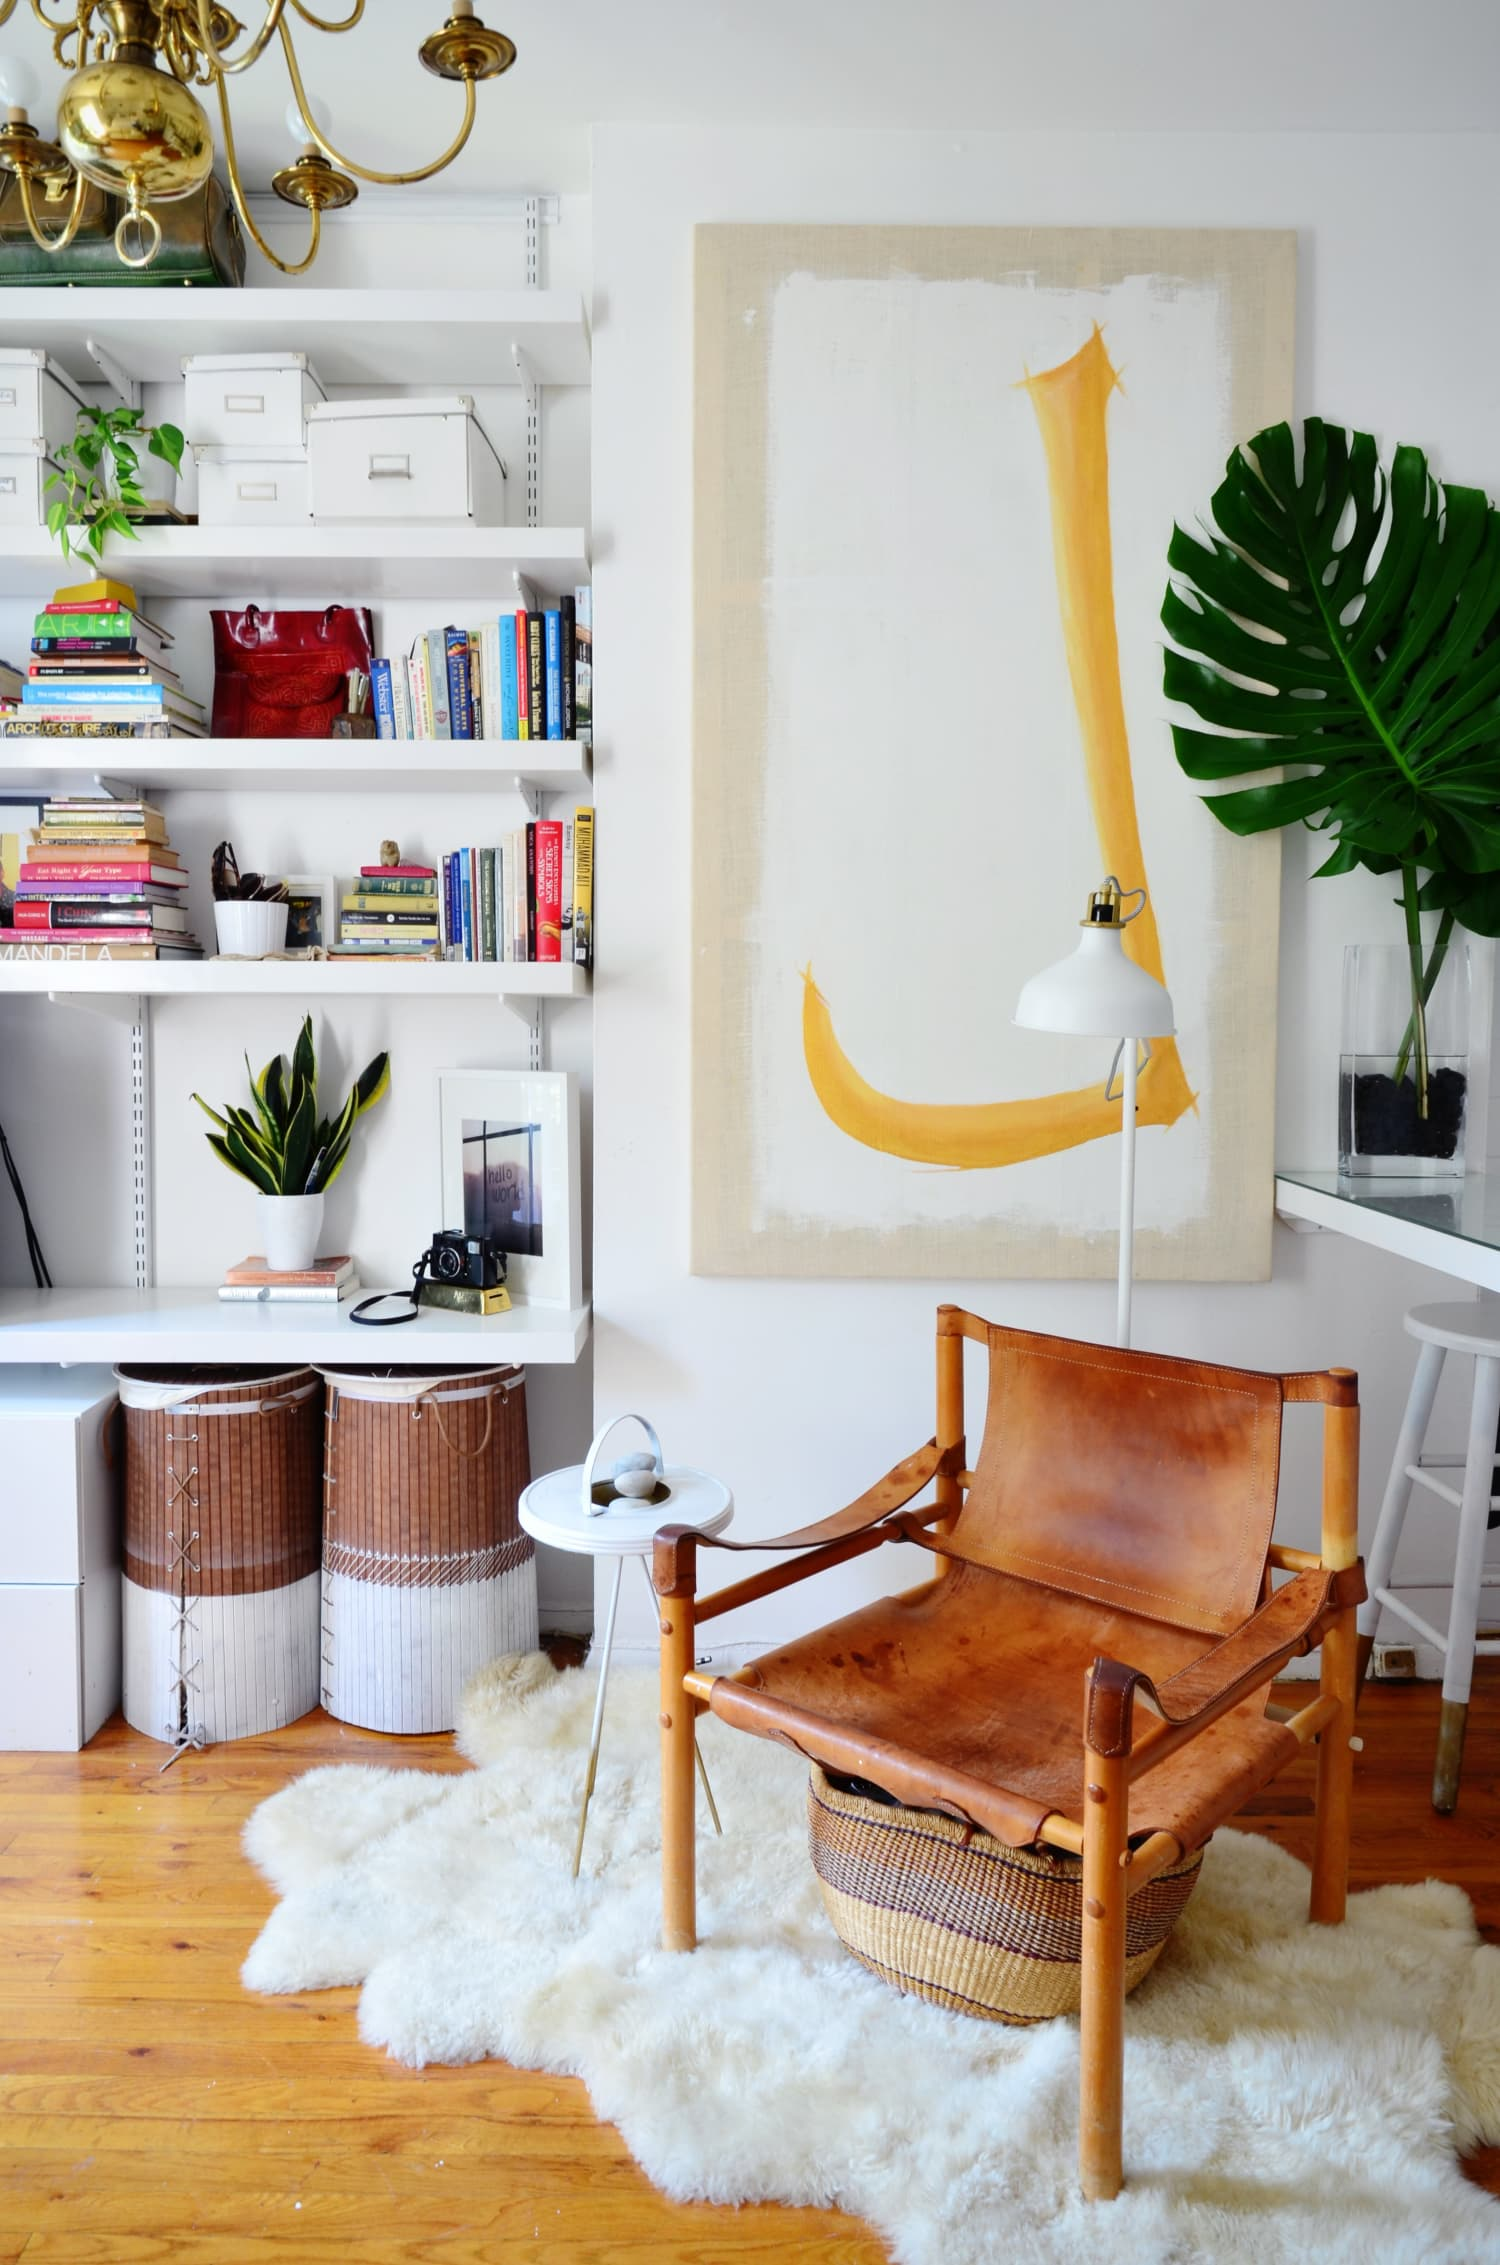 9 Ways to Make Use of Awkward Corners in Your House